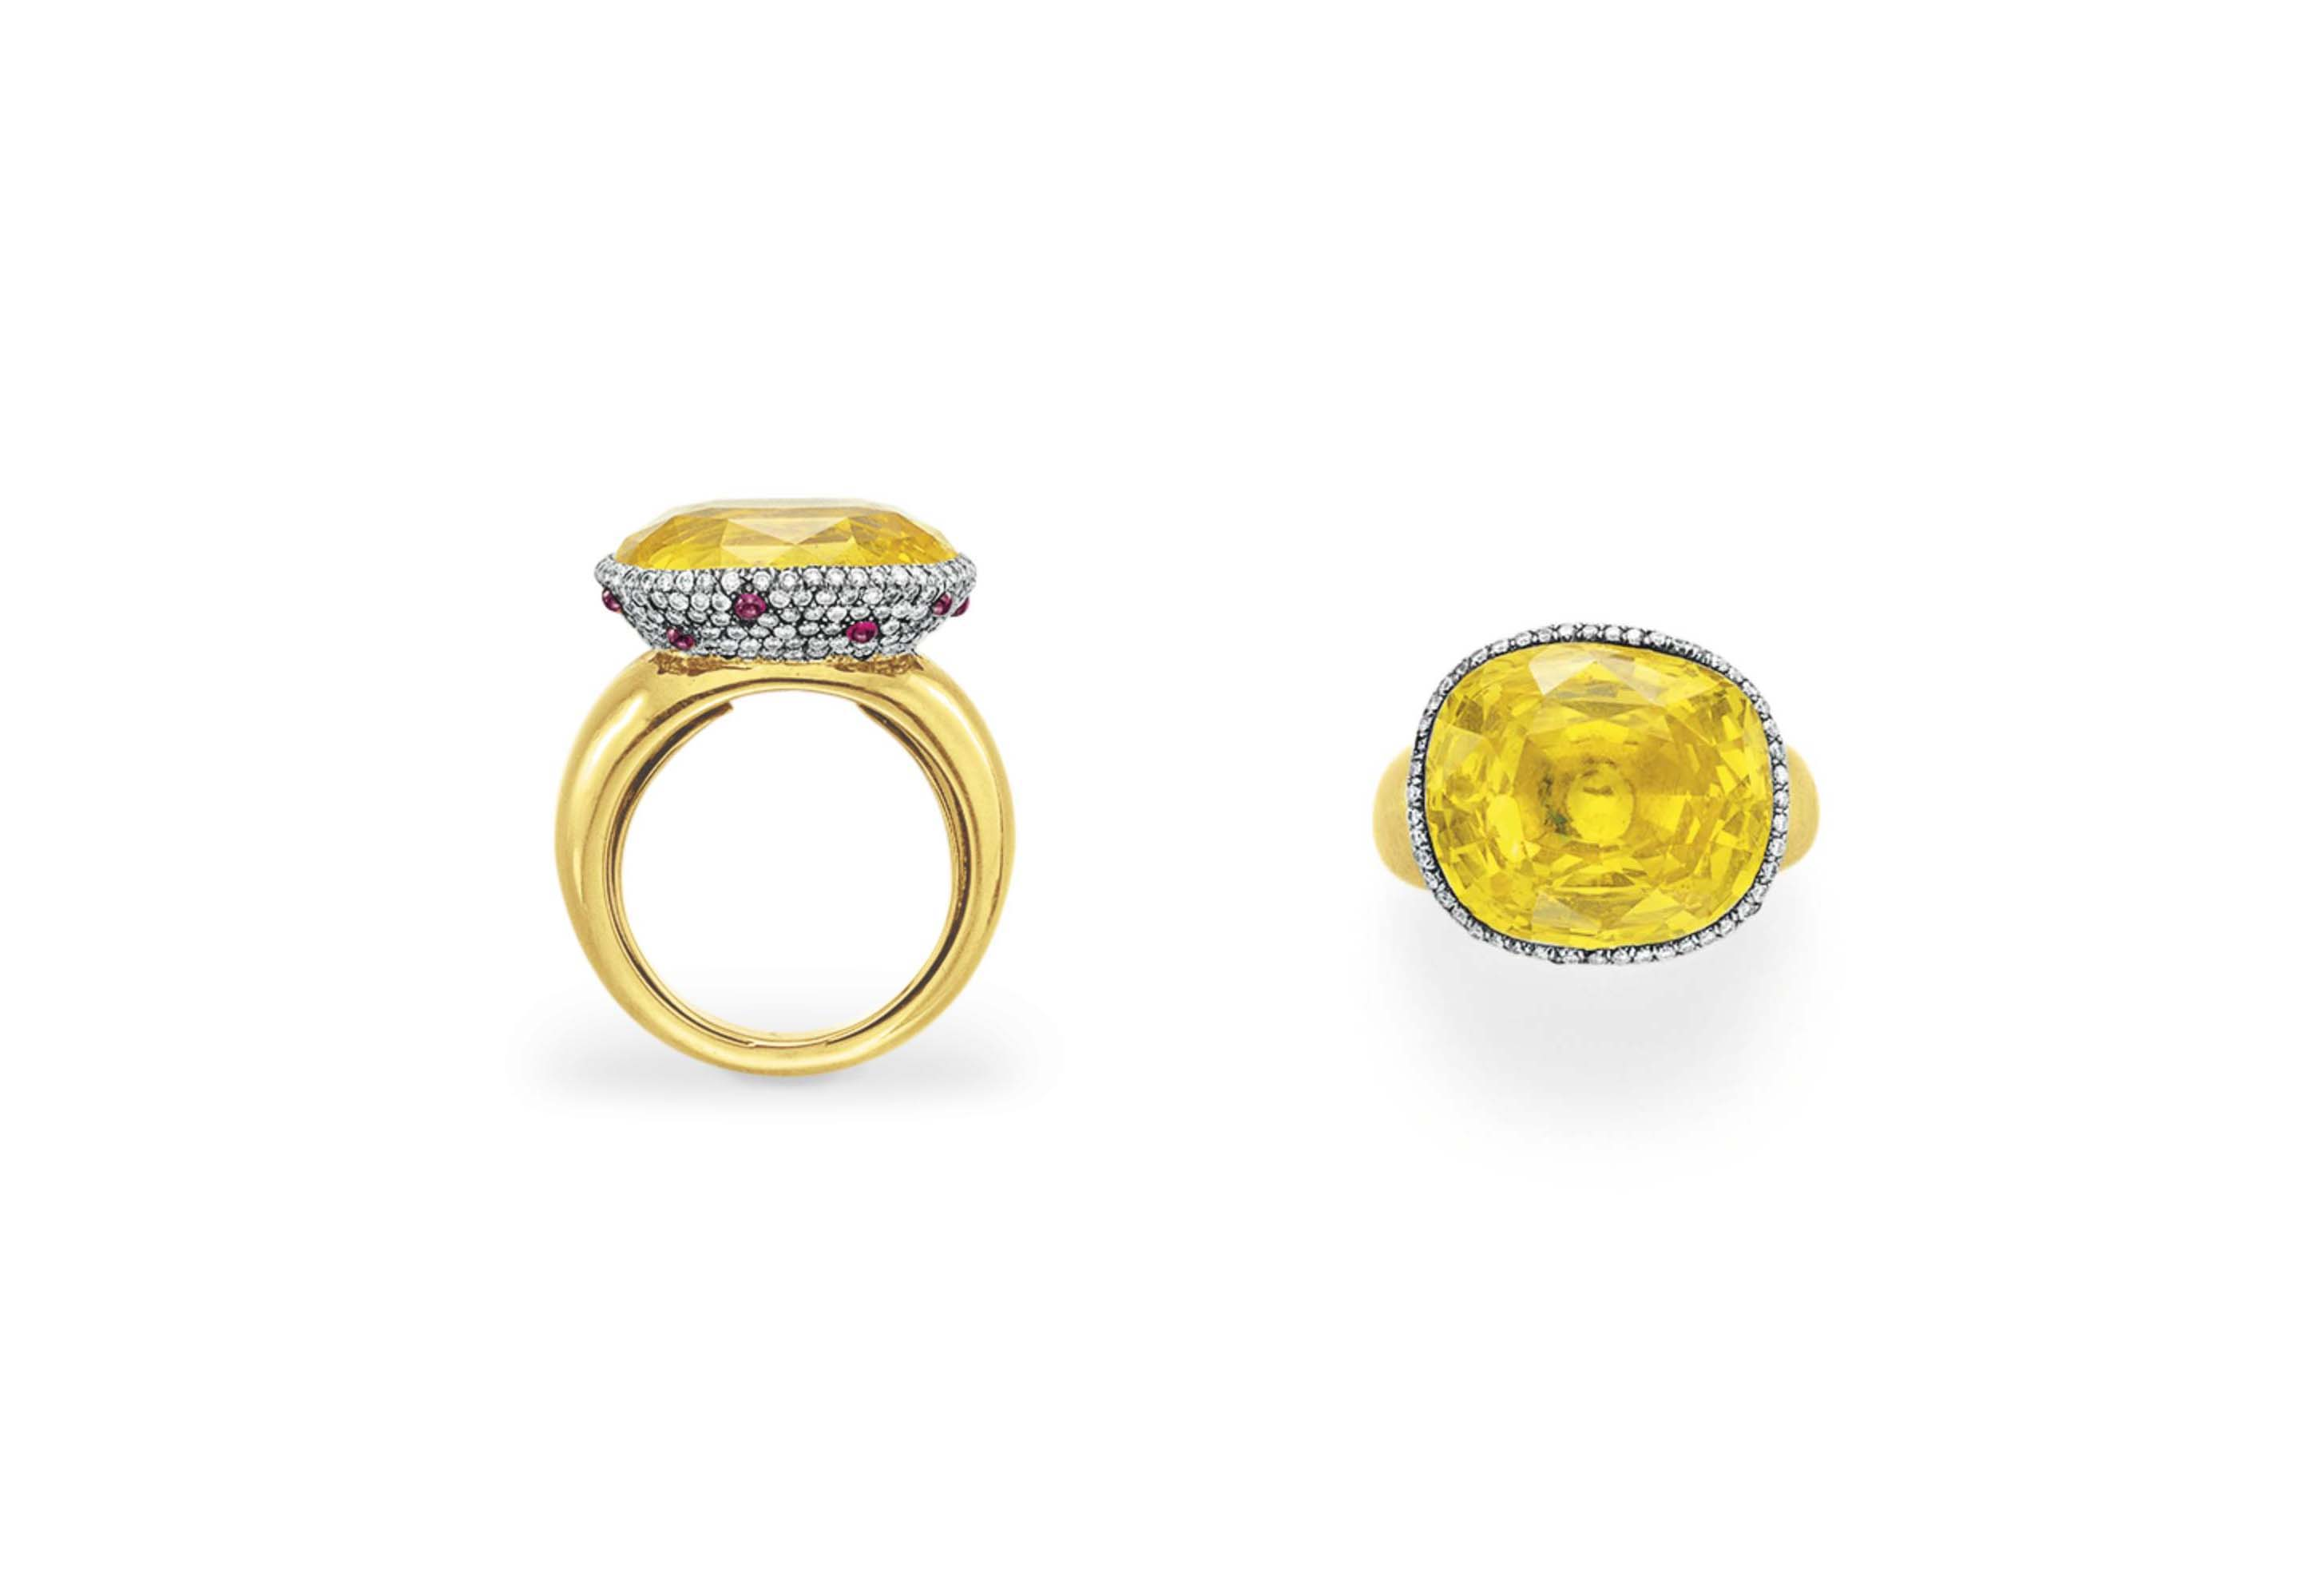 A YELLOW SAPPHIRE, DIAMOND AND RUBY RING, BY TAFFIN